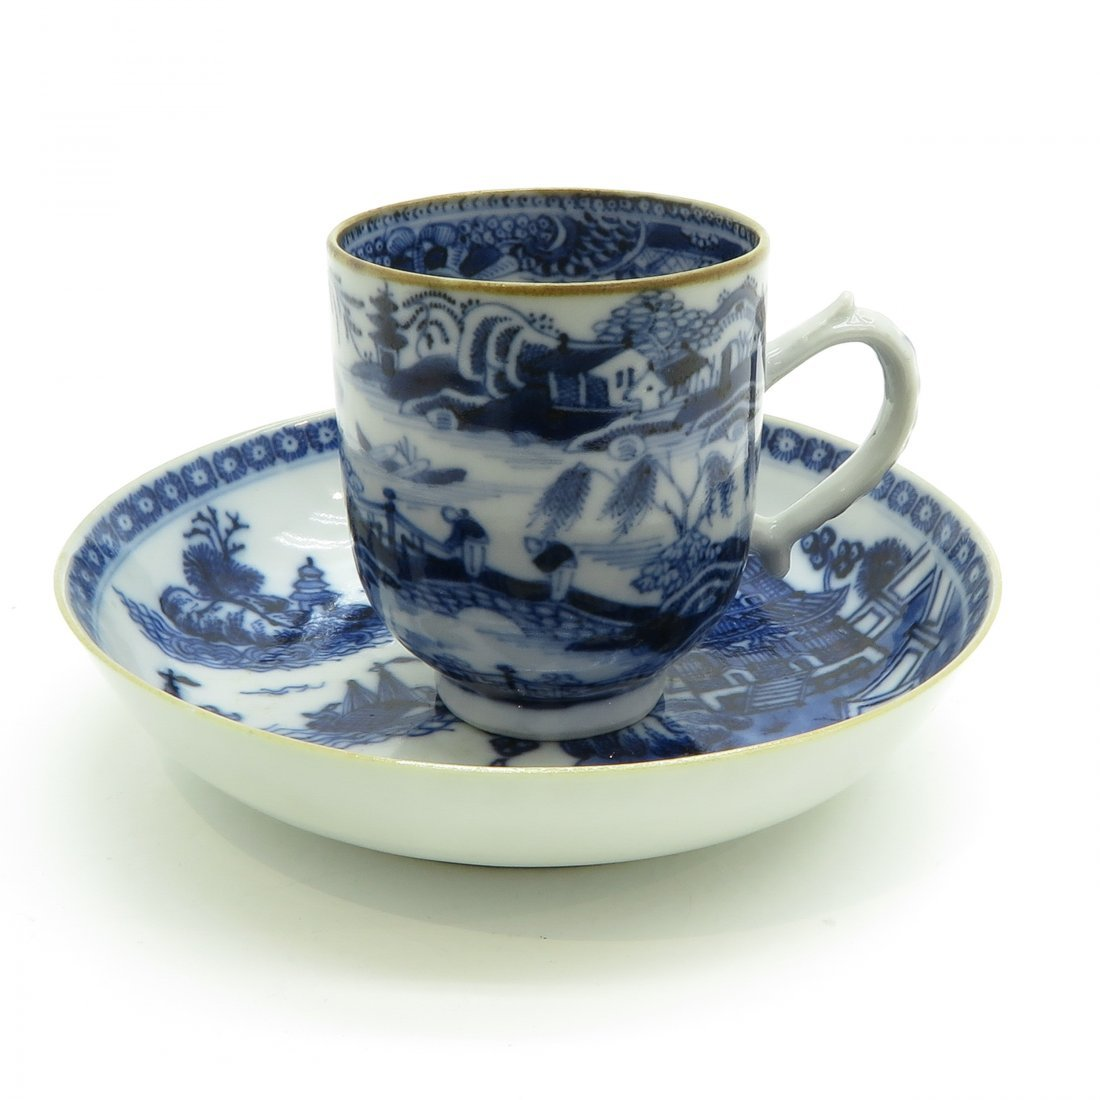 China Porcelain Cup and Saucer Circa 1800